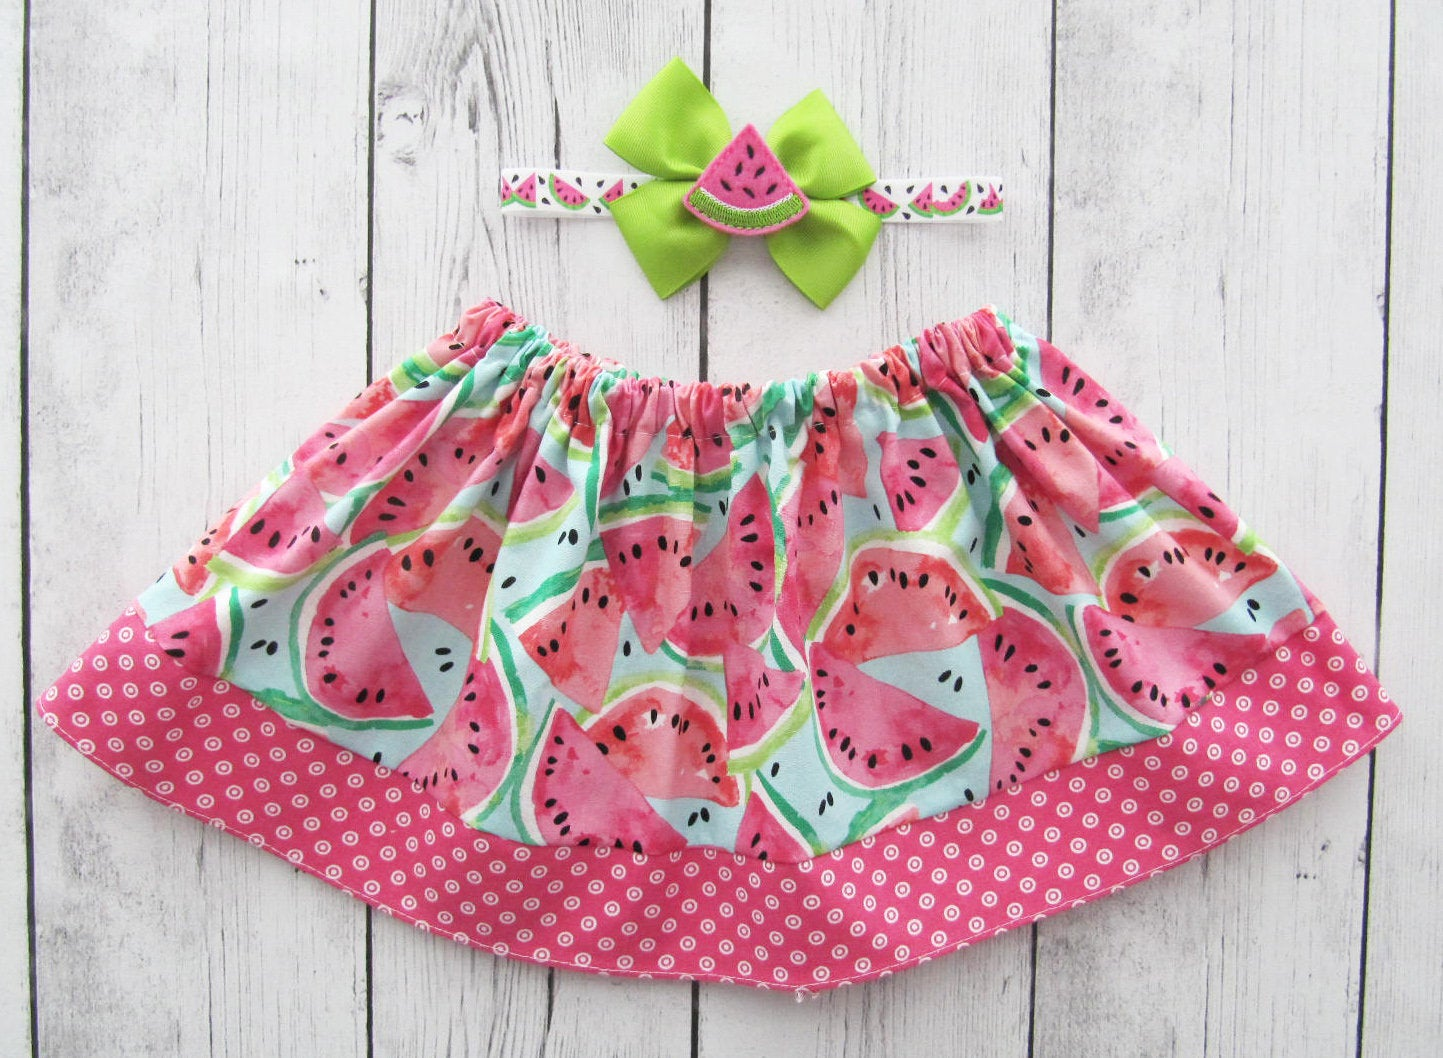 Watermelon Skirt for baby girl - one in a melon skirt, baby girl skirt, watermelon baby girl, watermelon skirt girl, summer skirts